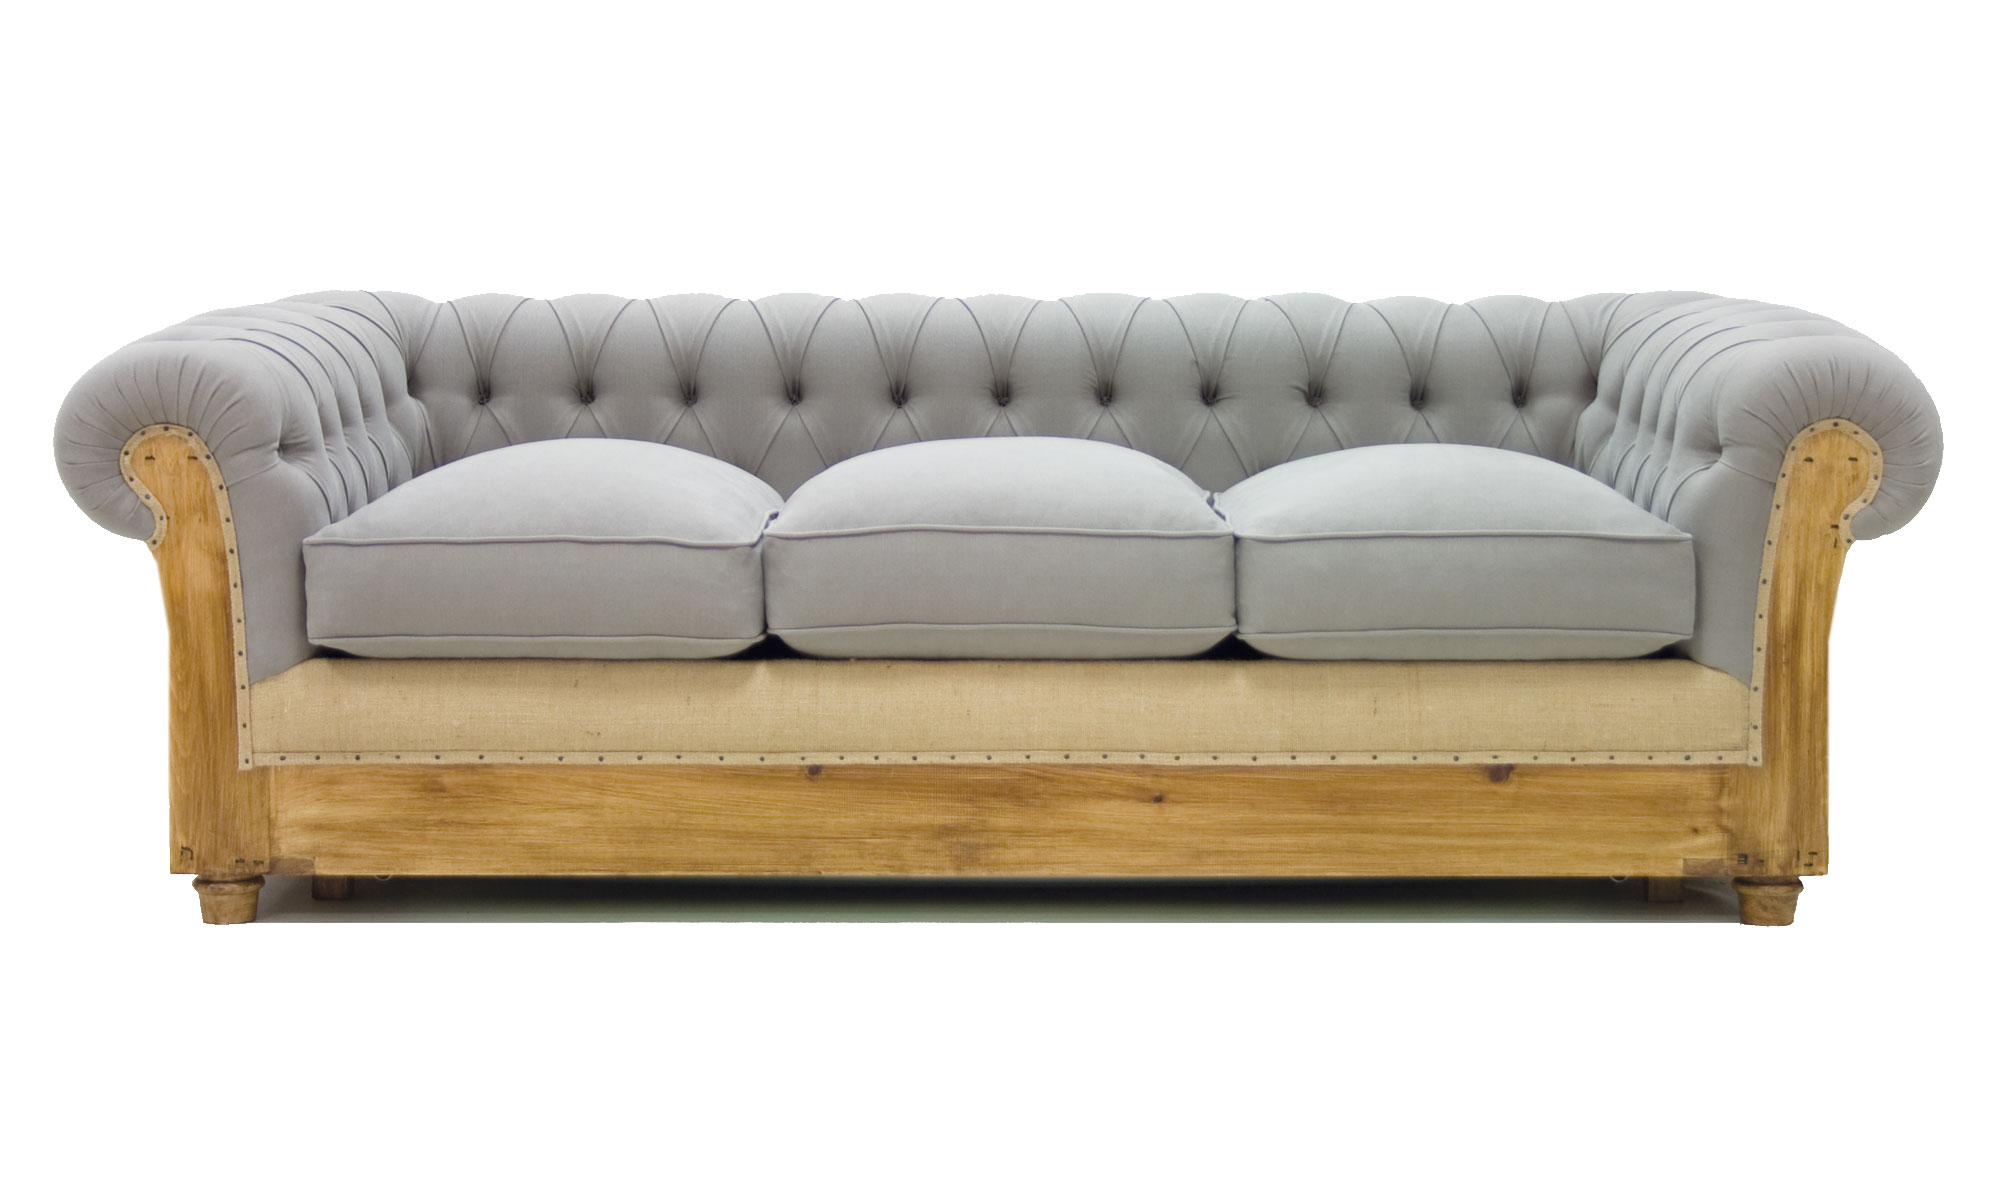 Sof cama gris chesterfield chesire en for Sofa cama muebles boom